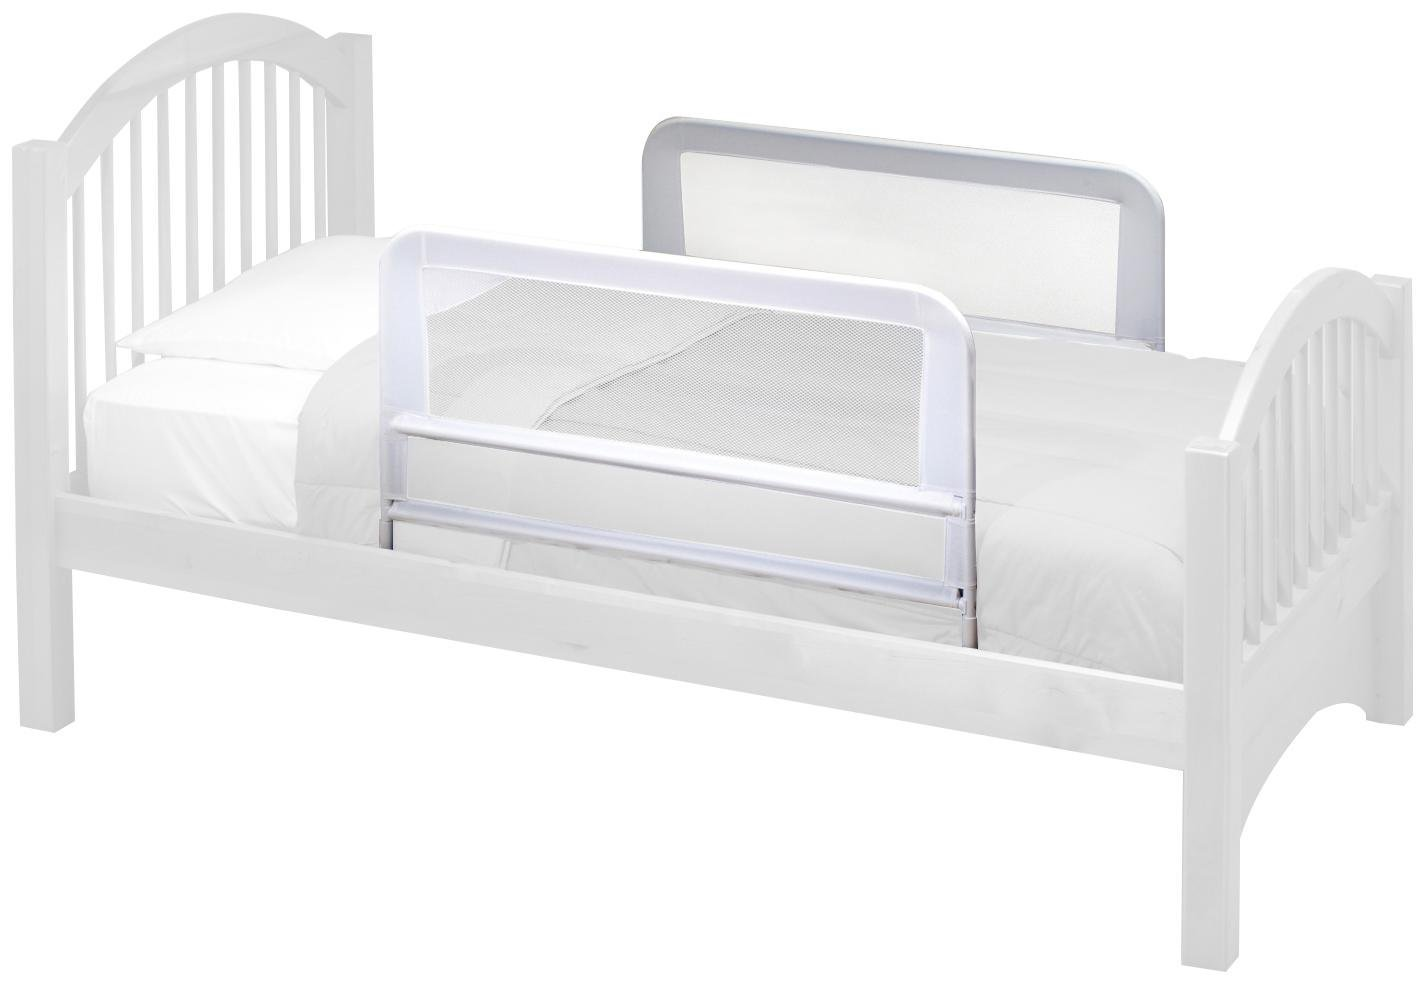 KidCo BR203 Children's Mesh Bed Rail, White Inc.